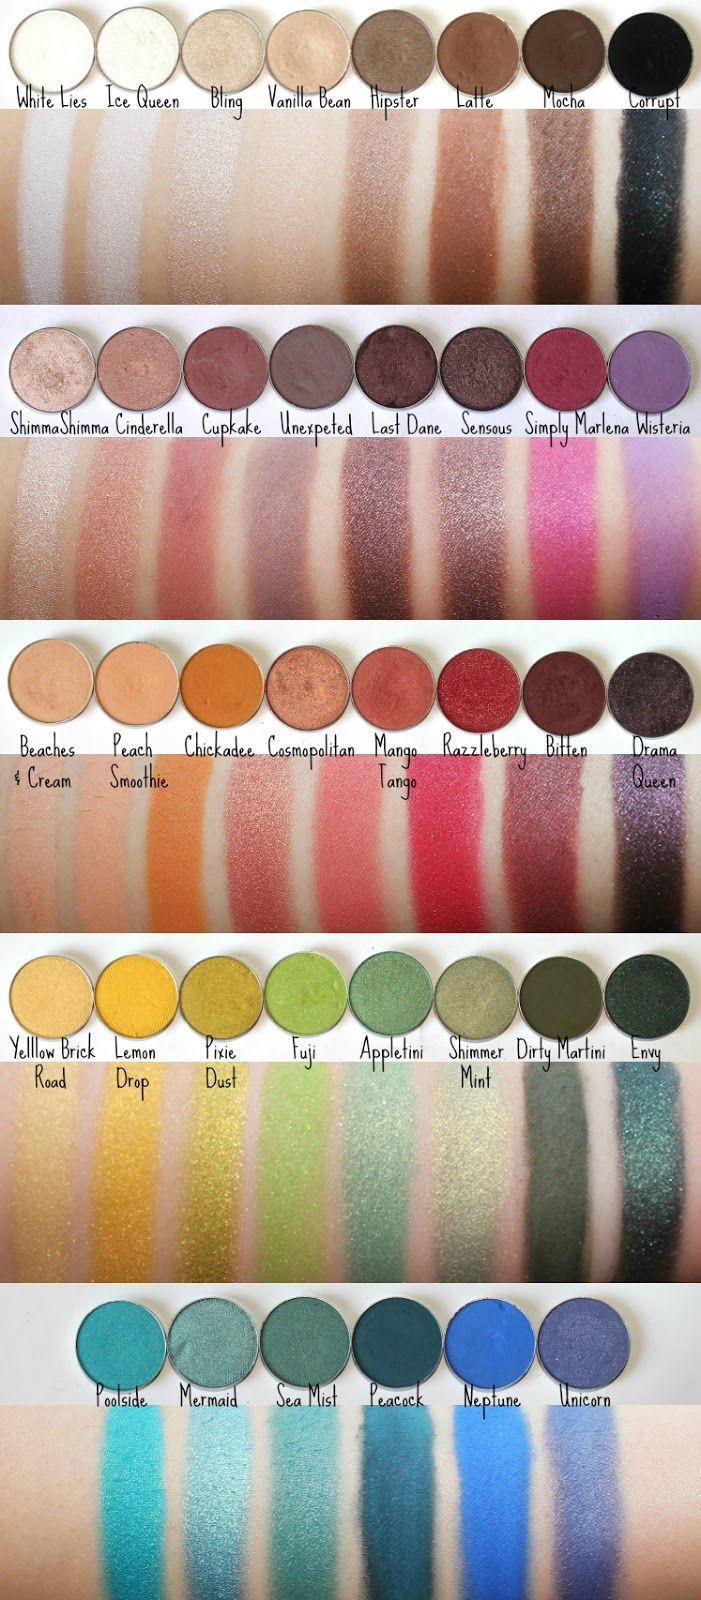 25+ Best Ideas About Colourpop Eyeshadow Swatches On